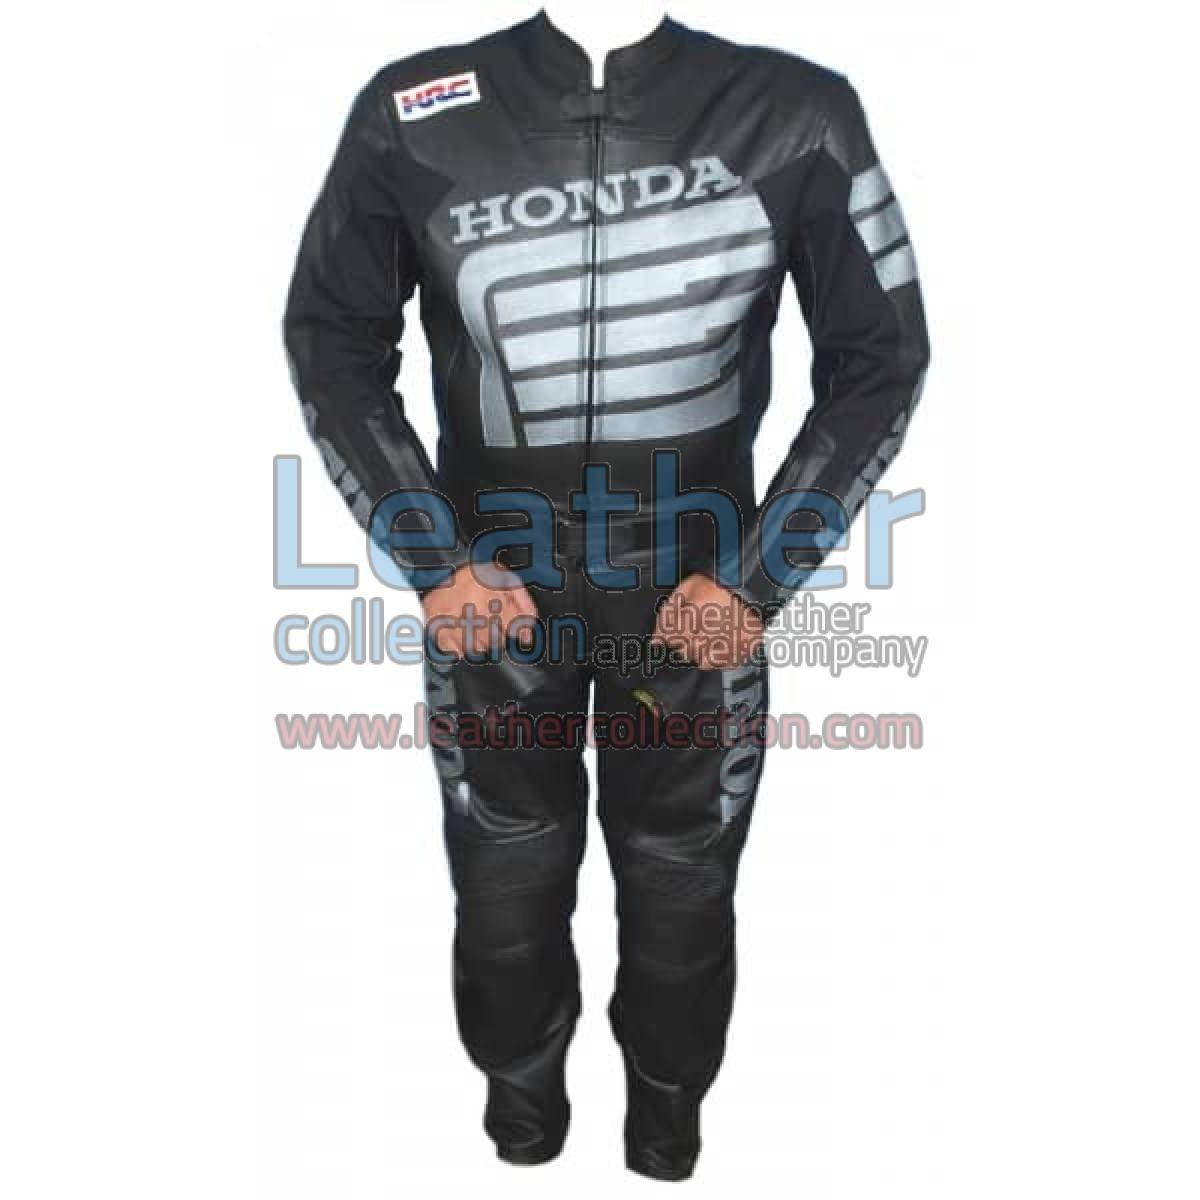 Honda Motorcycle Leather Suit